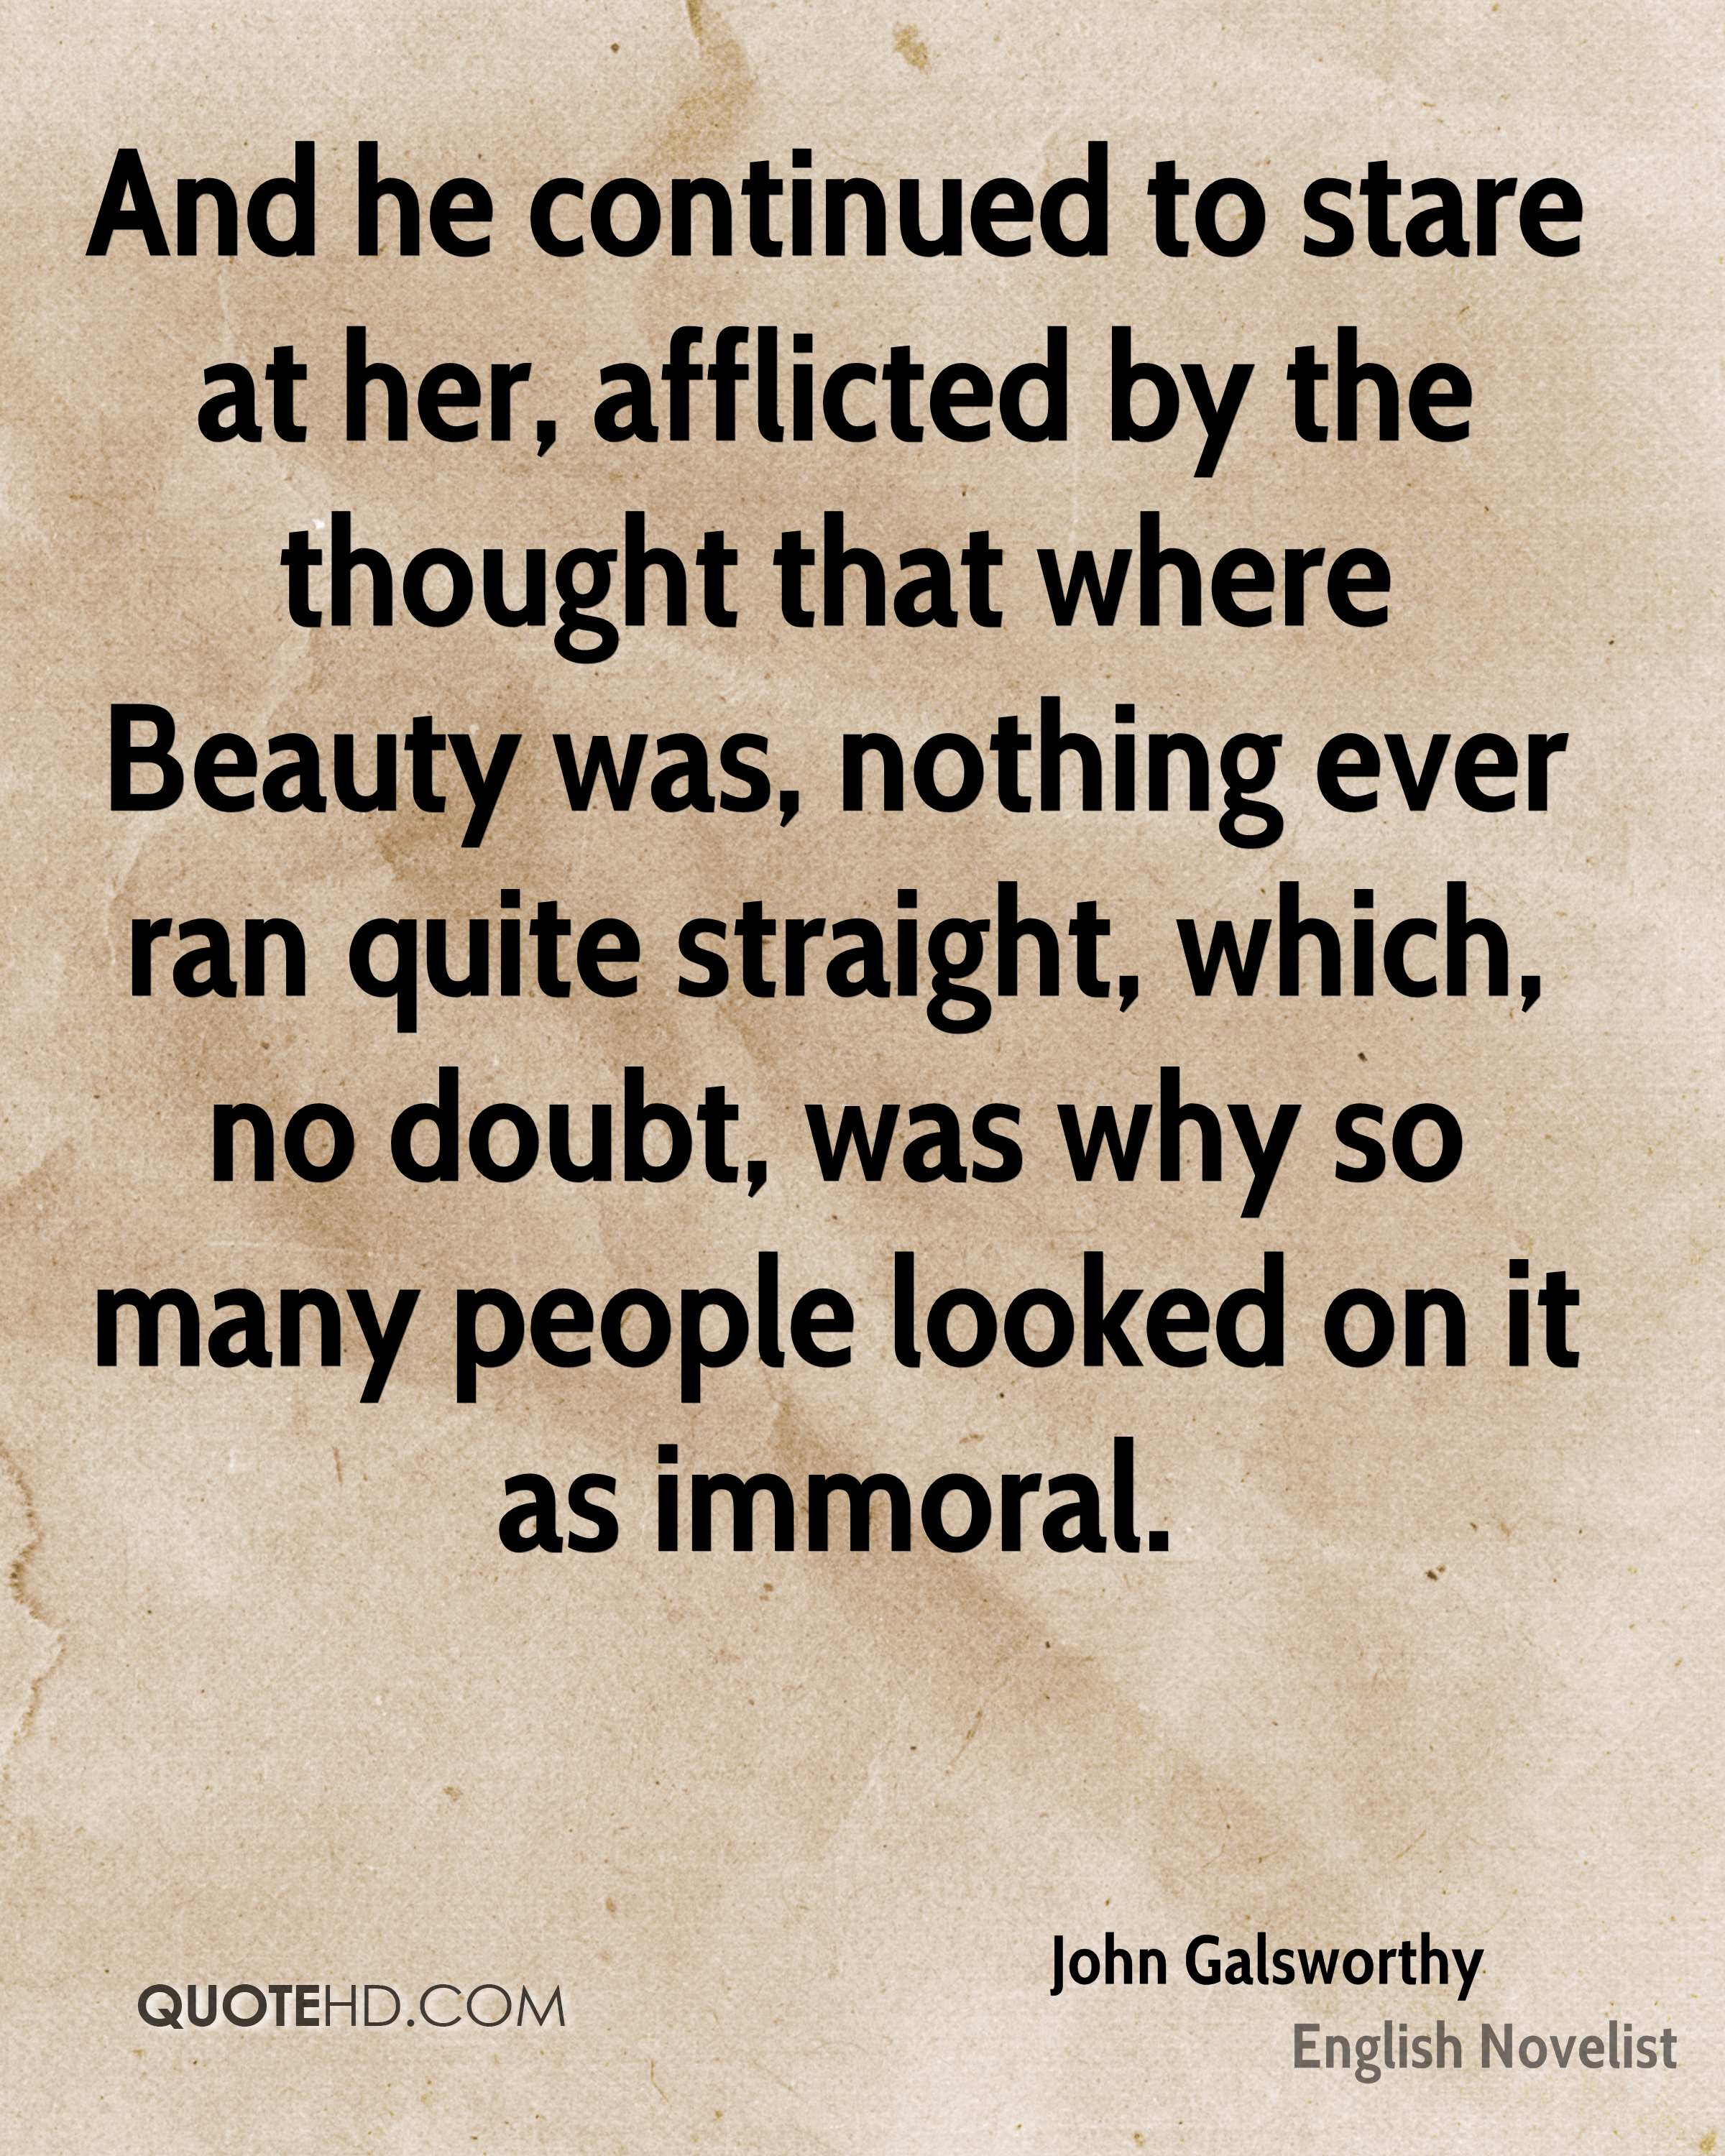 And he continued to stare at her, afflicted by the thought that where Beauty was, nothing ever ran quite straight, which, no doubt, was why so many people looked on it as immoral.